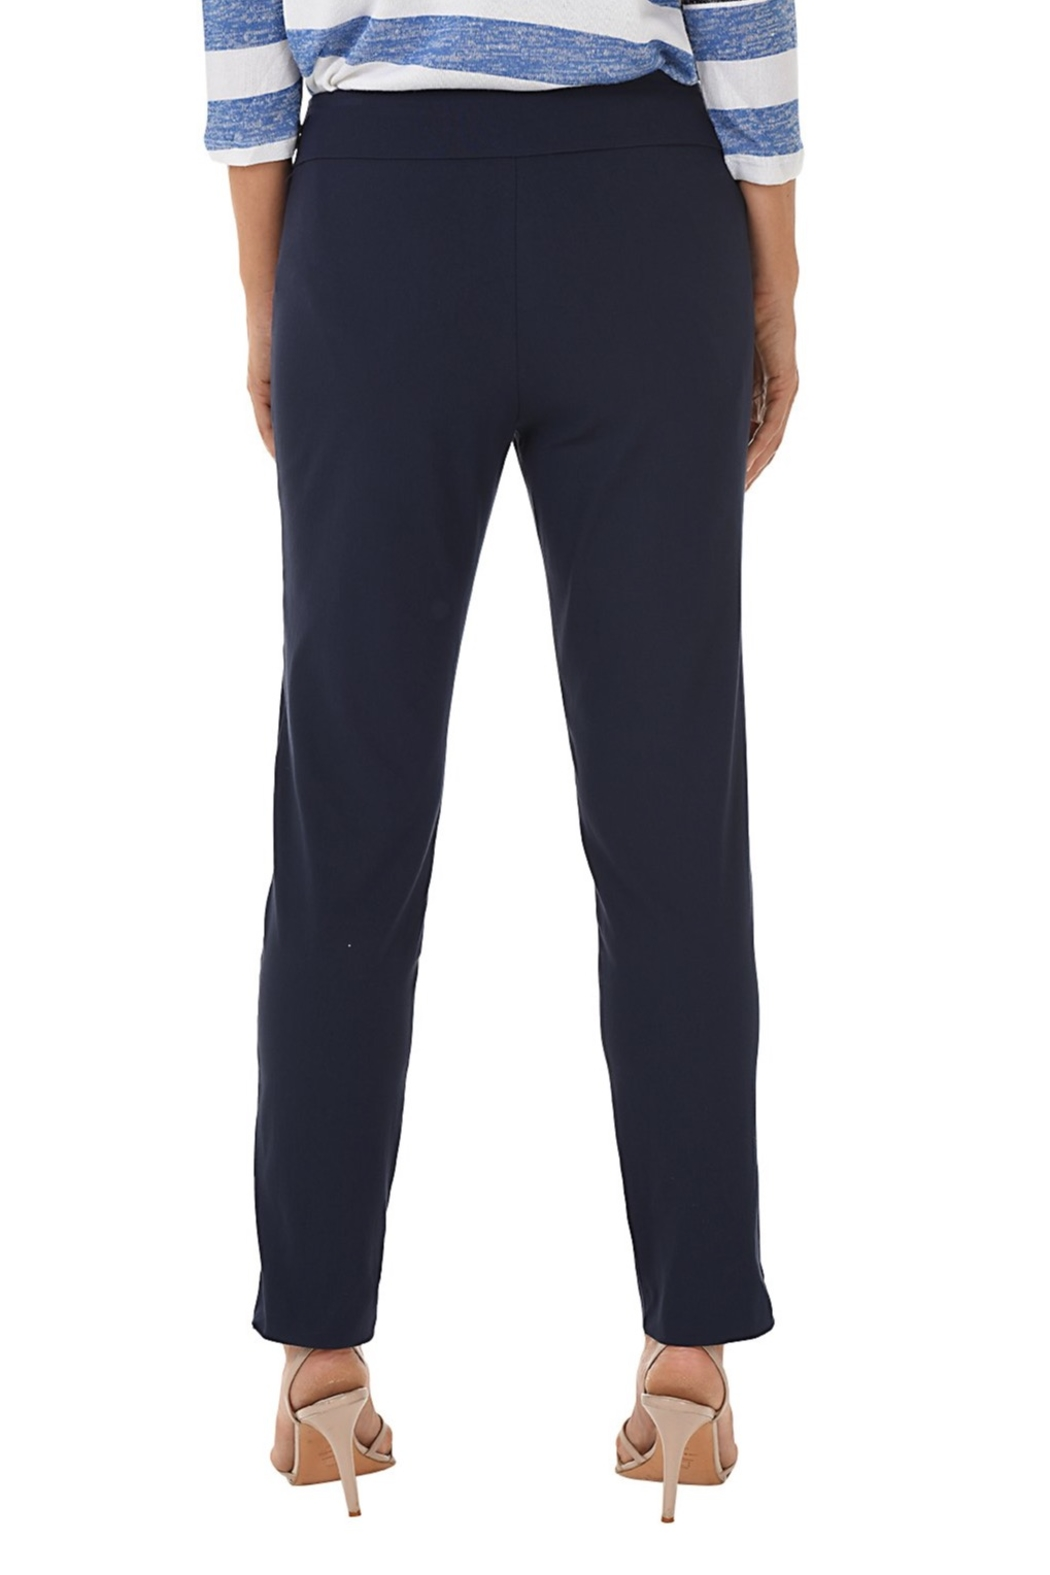 Krazy Larry Pant P-507 - Side Cropped Image